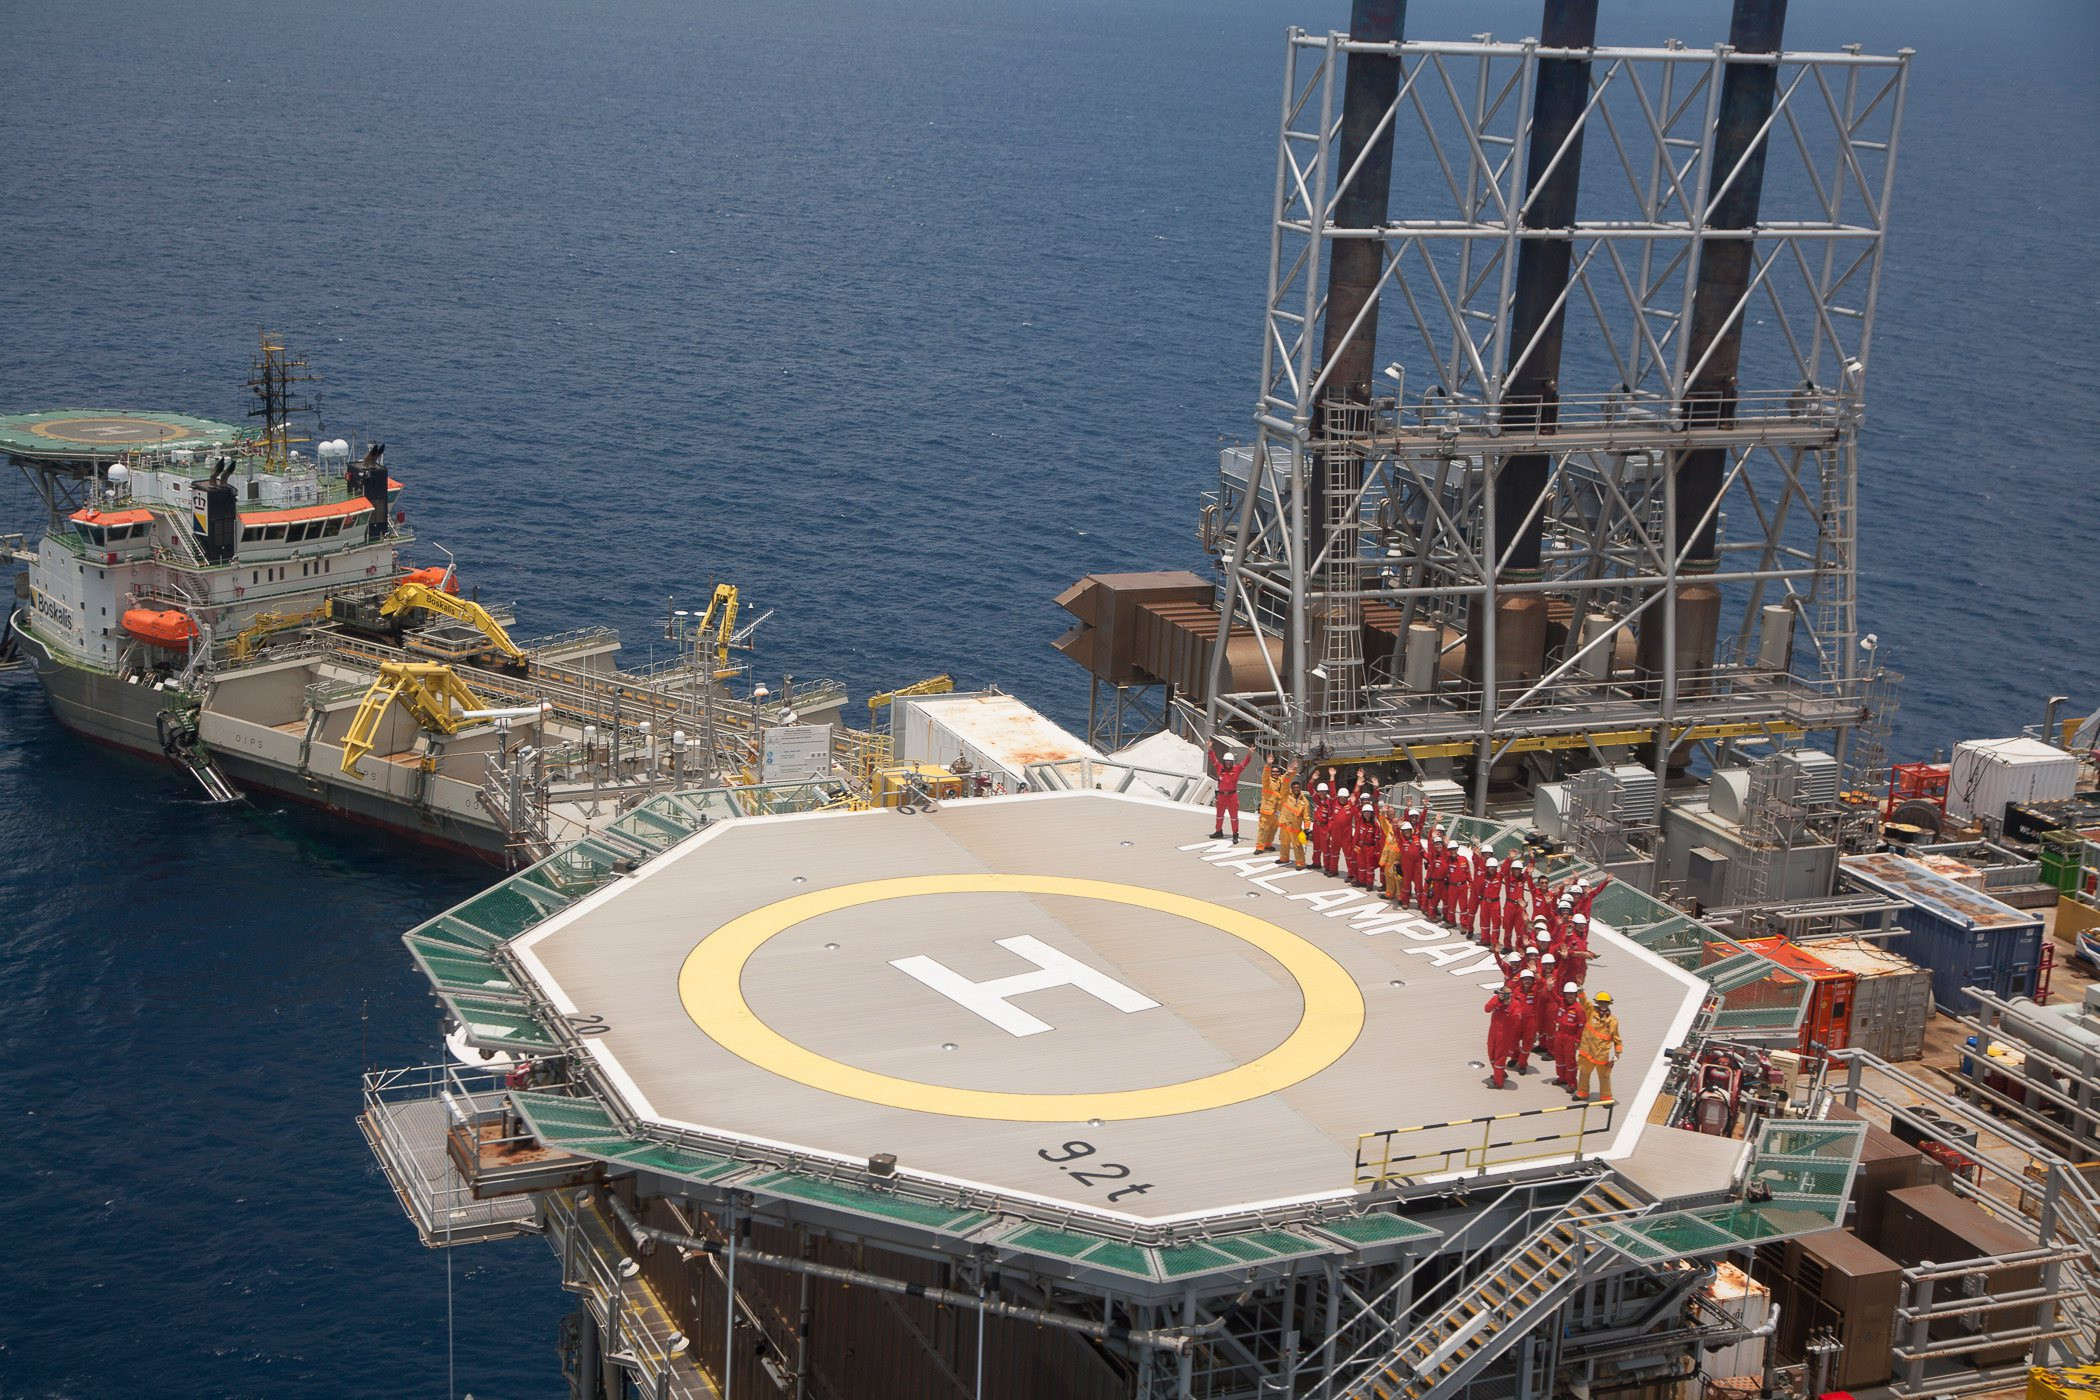 Crew on helicopter deck of the existing production platform